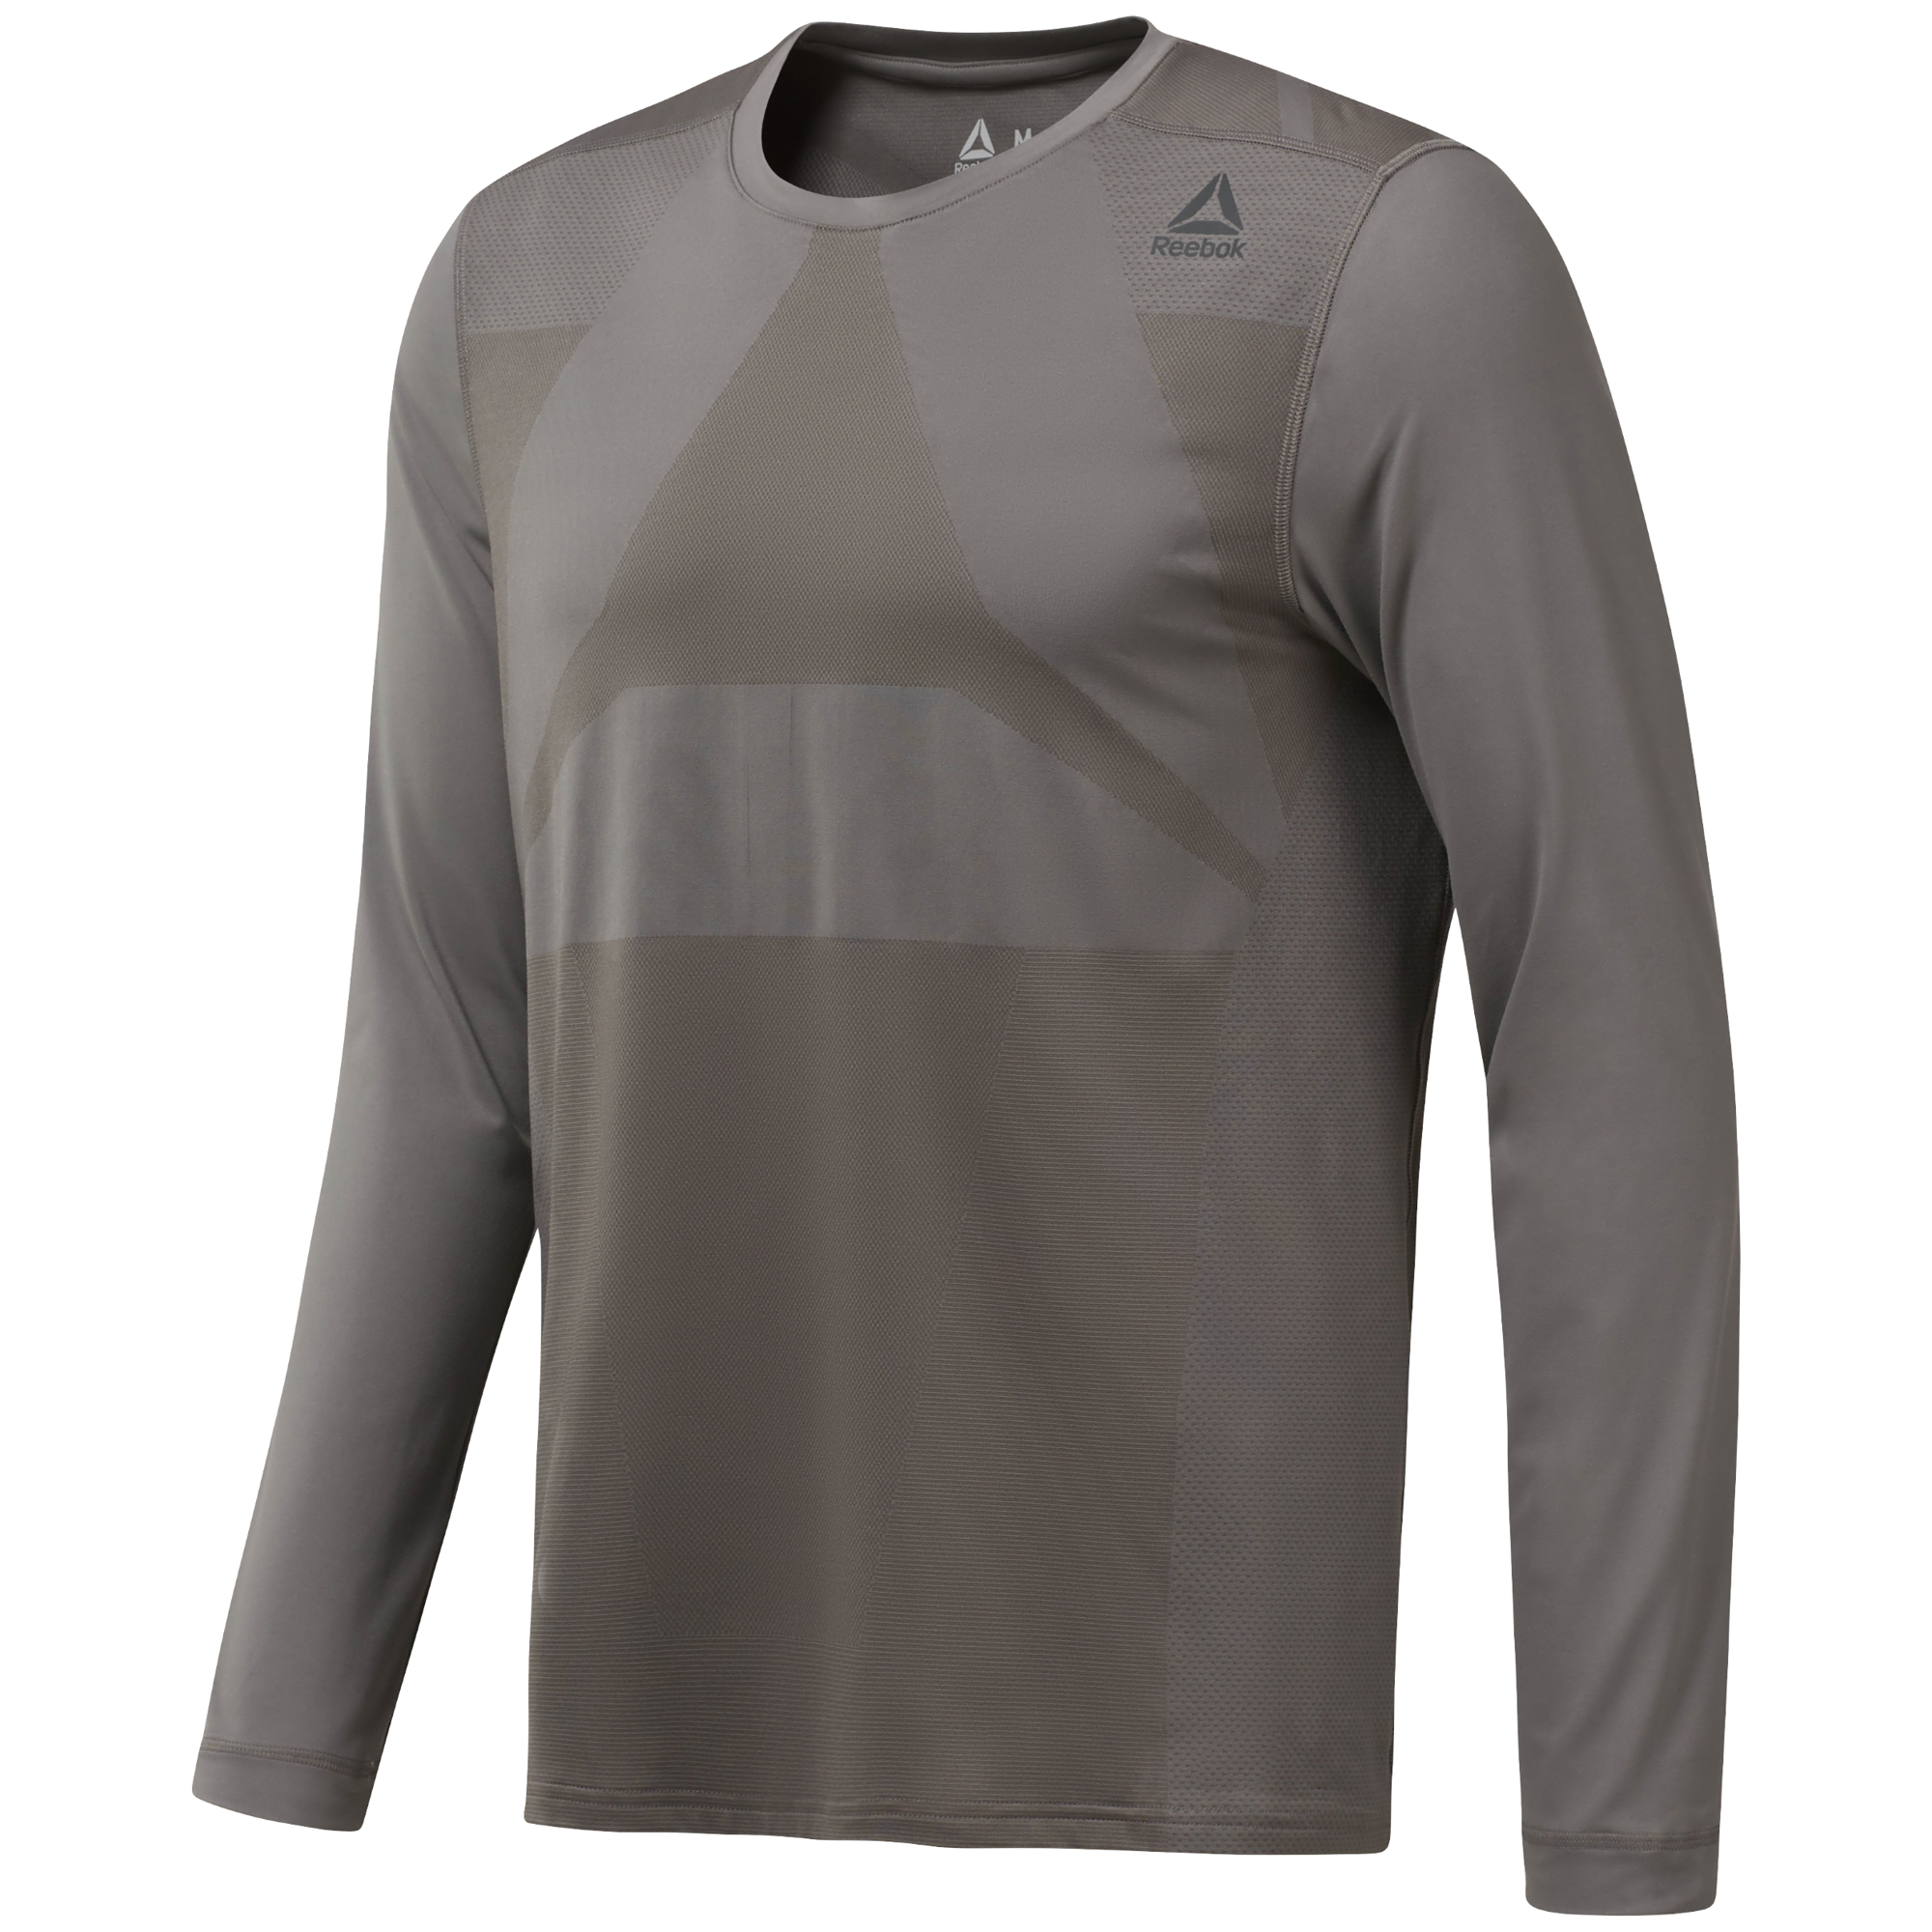 Reebok Thermowarm Vent Long Sleeve Tee | Jerseys